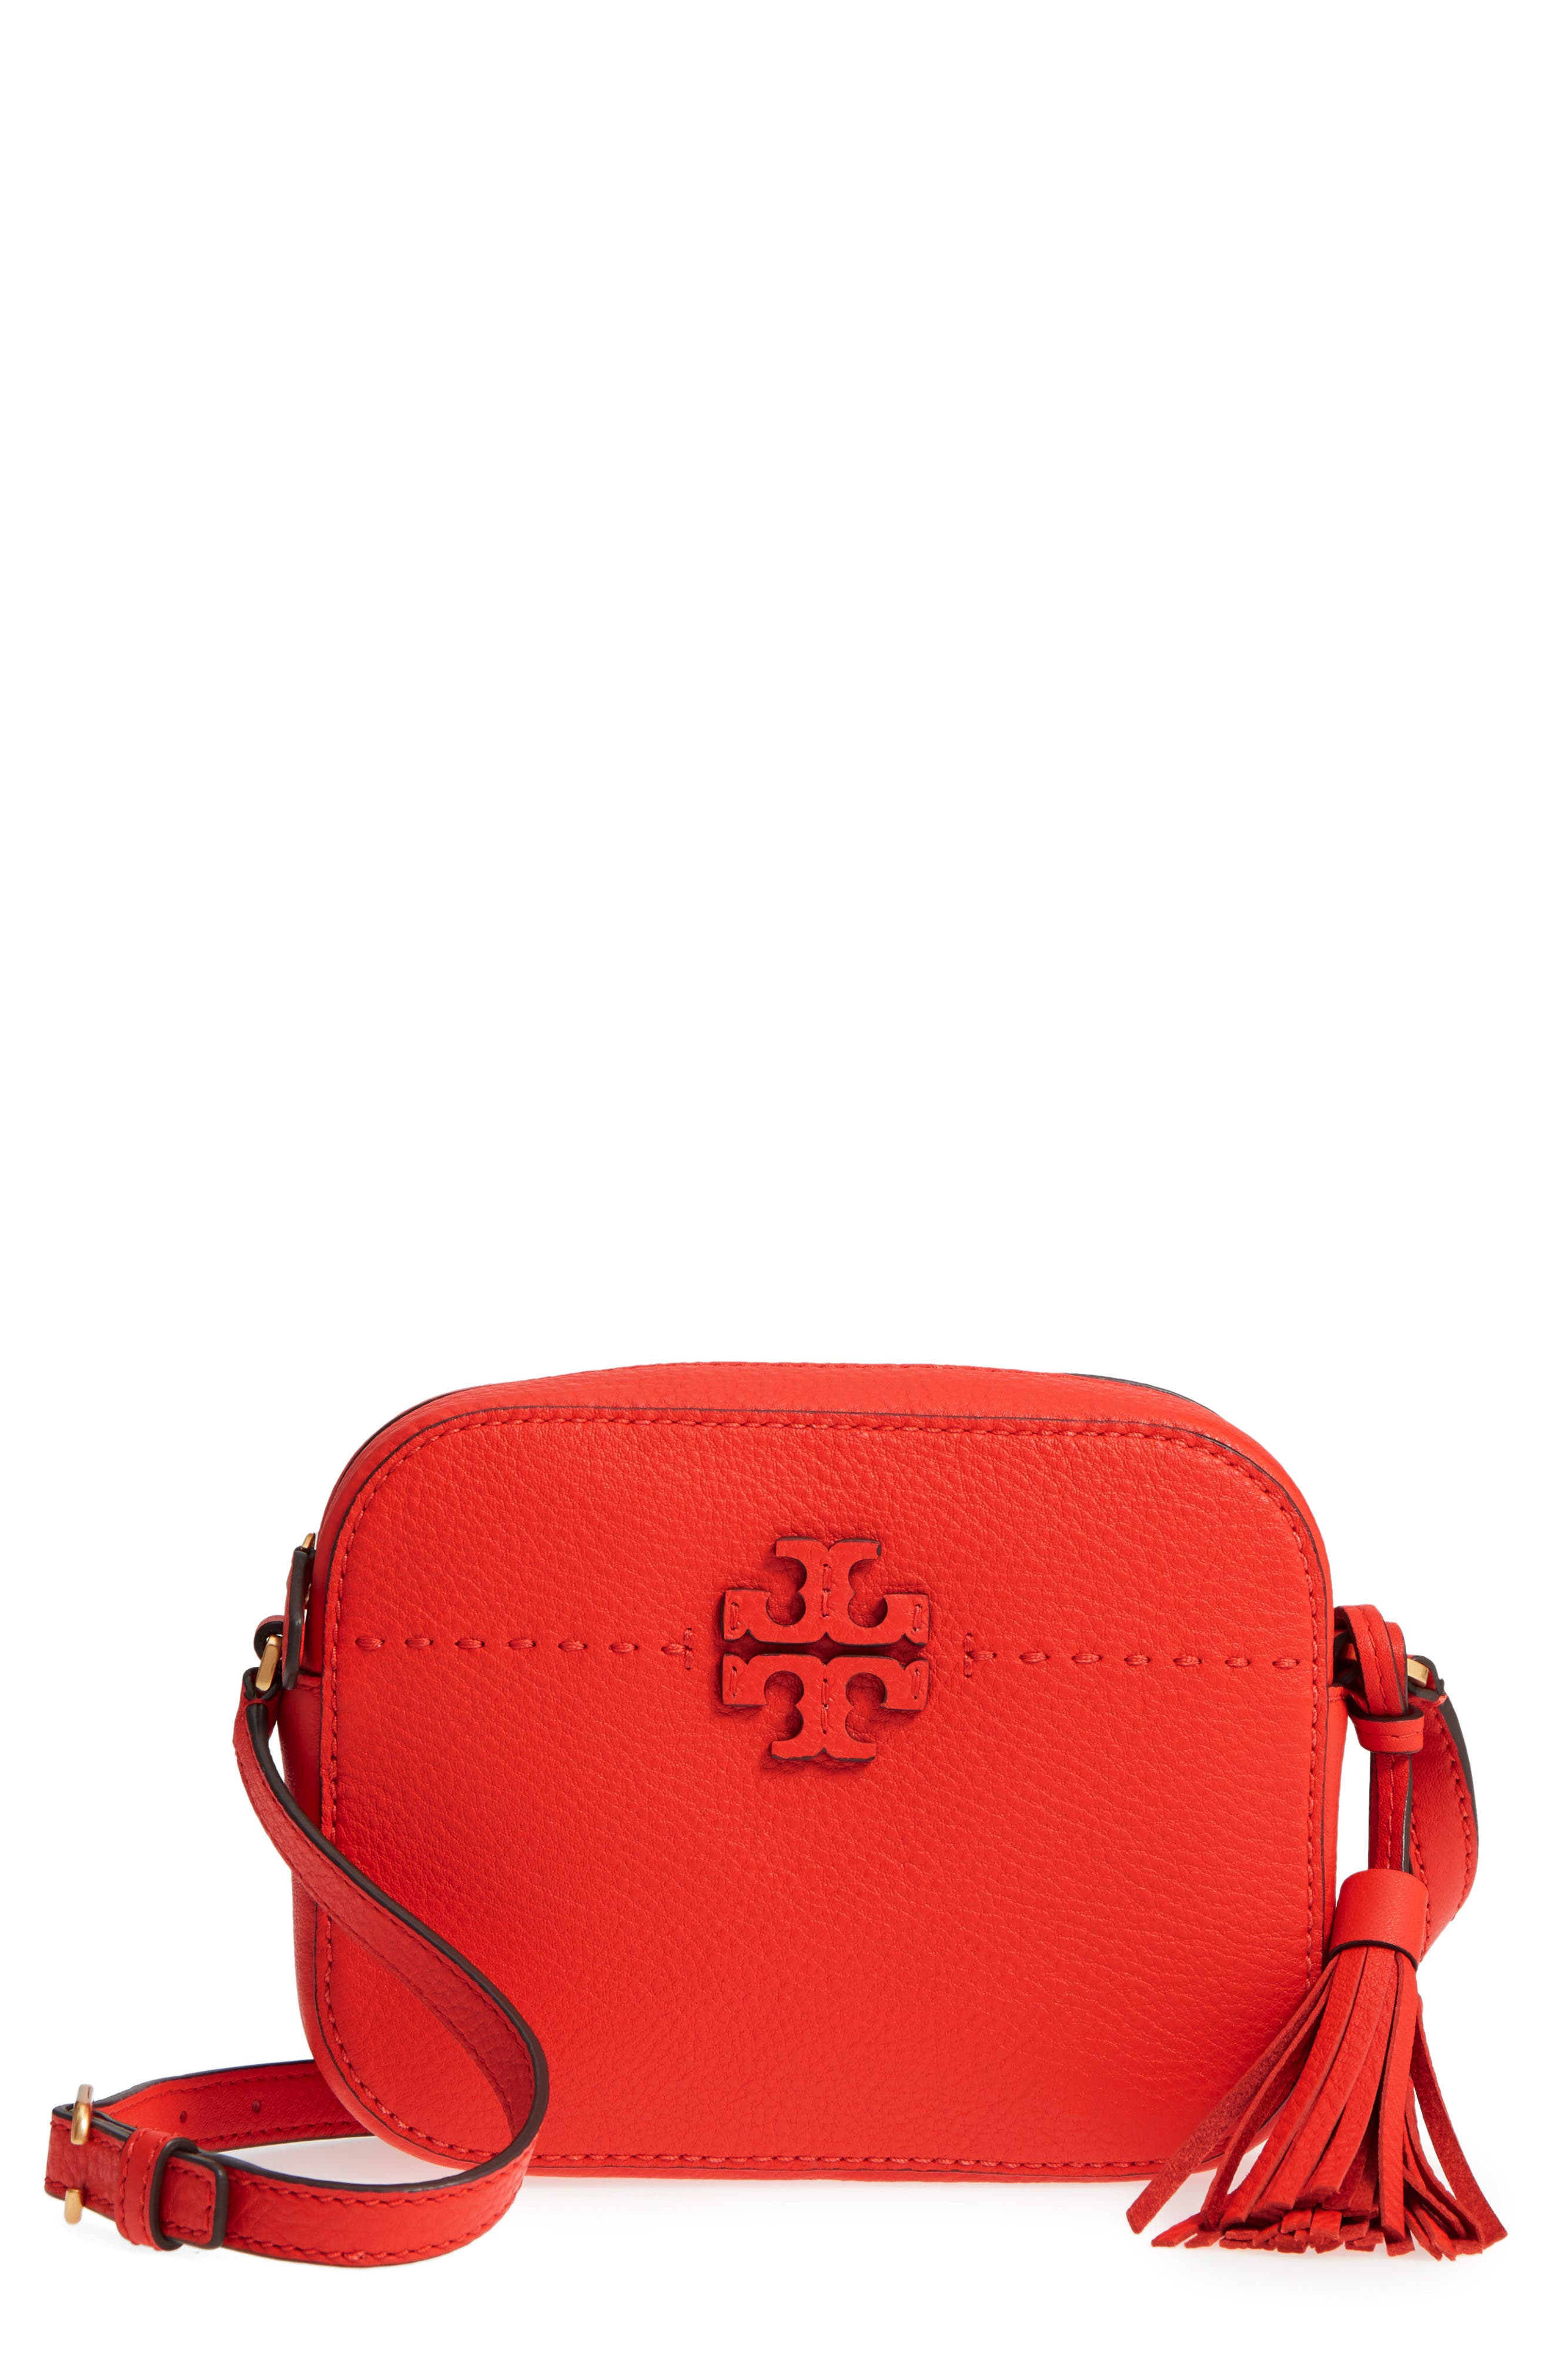 McGraw Leather Camera Bag,                         Main,                         color, Poppy Red